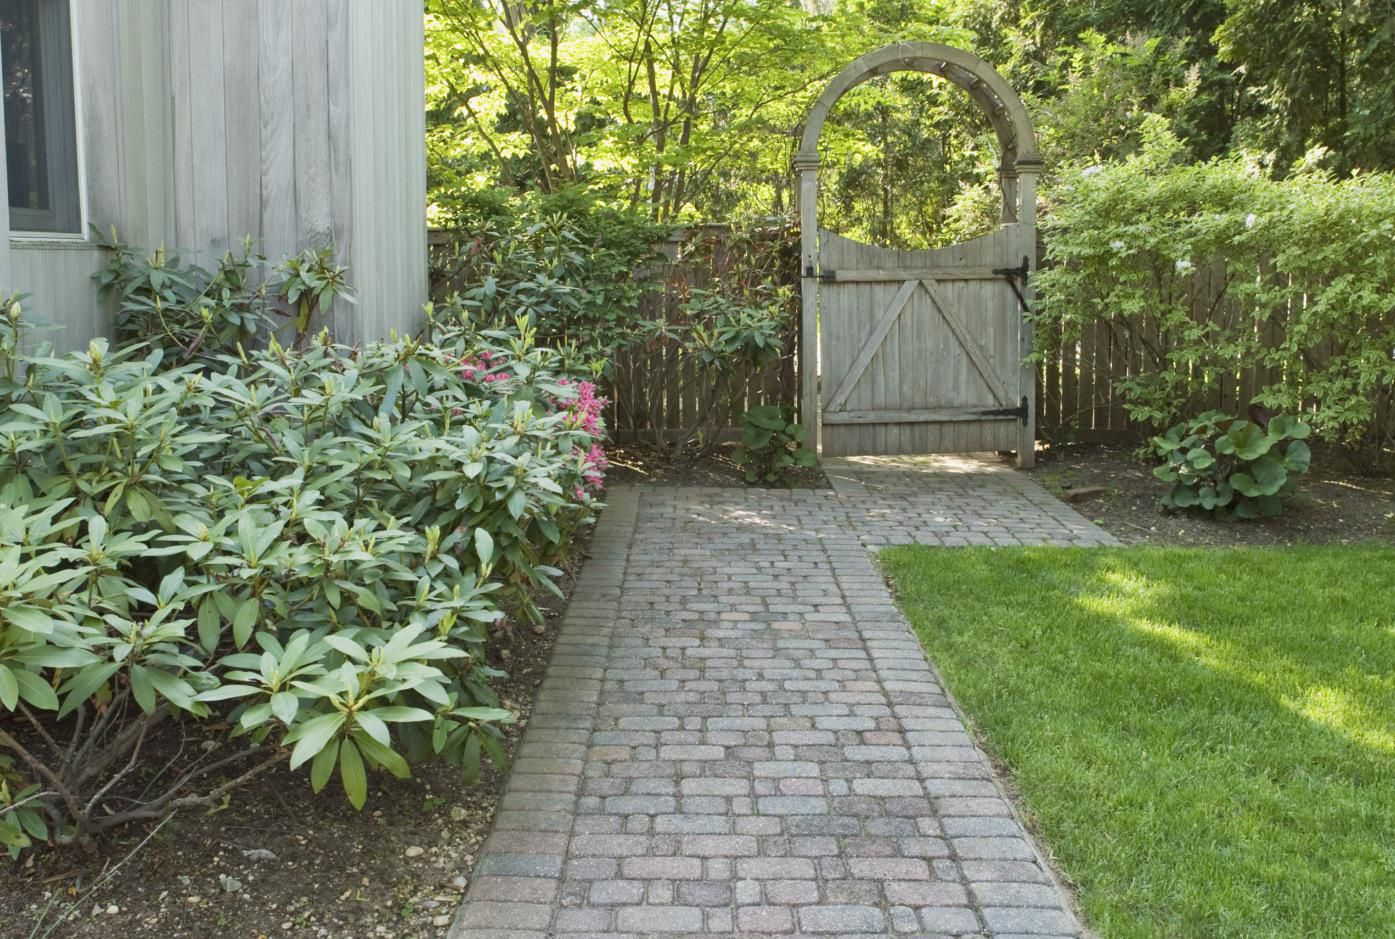 Landscaping ideas for side yards for Looking for landscaping ideas